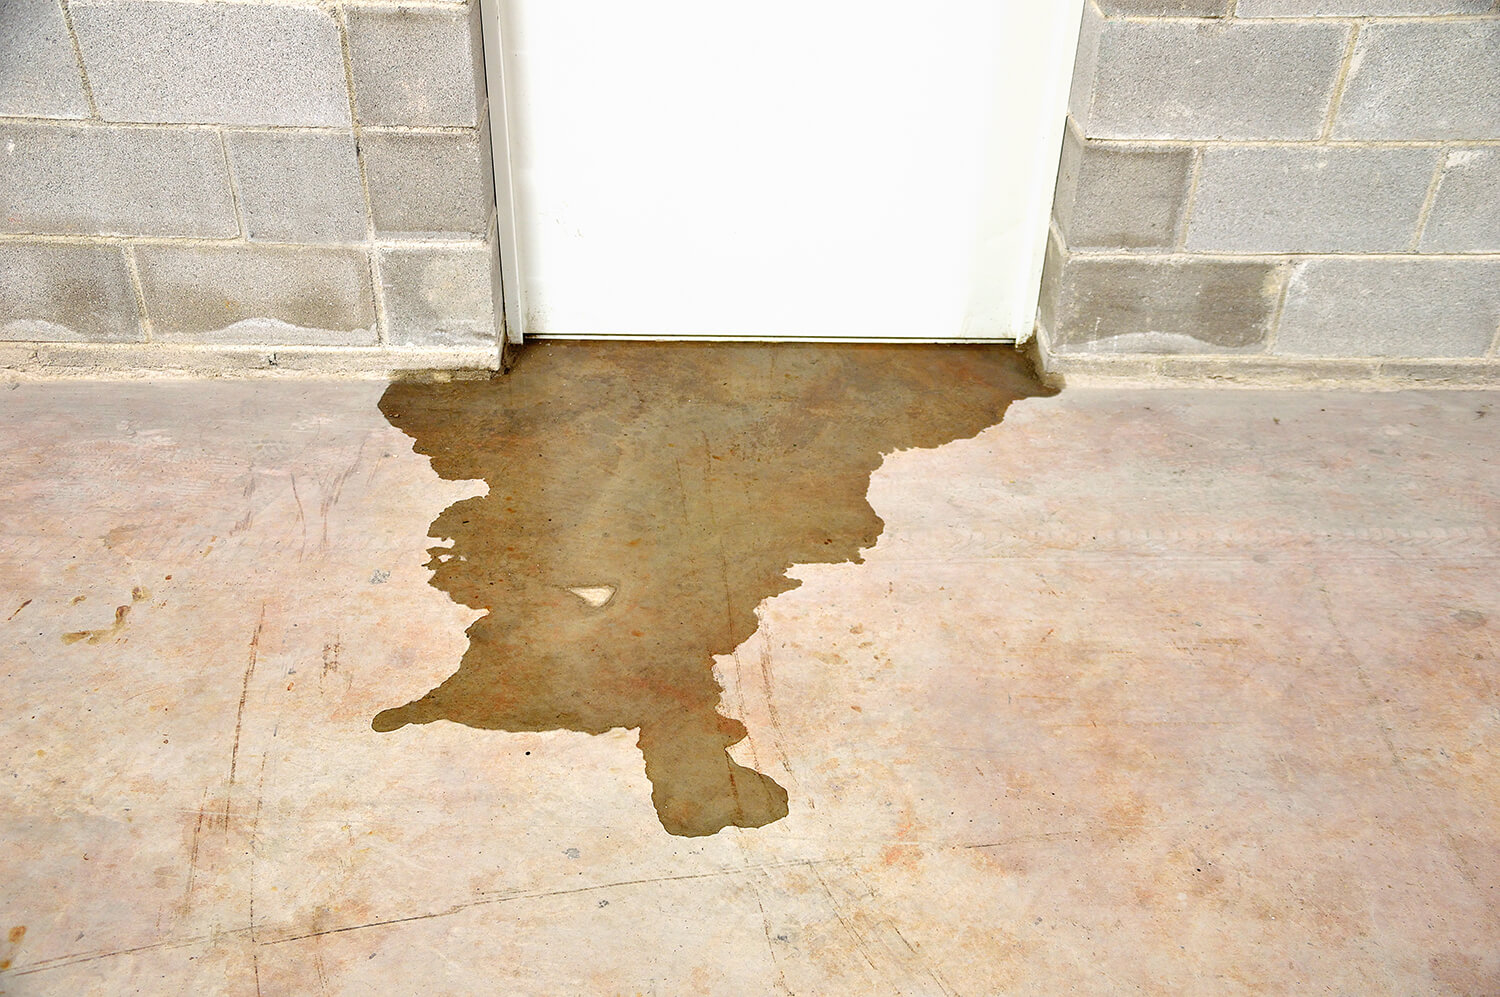 sewage backup from commercial building